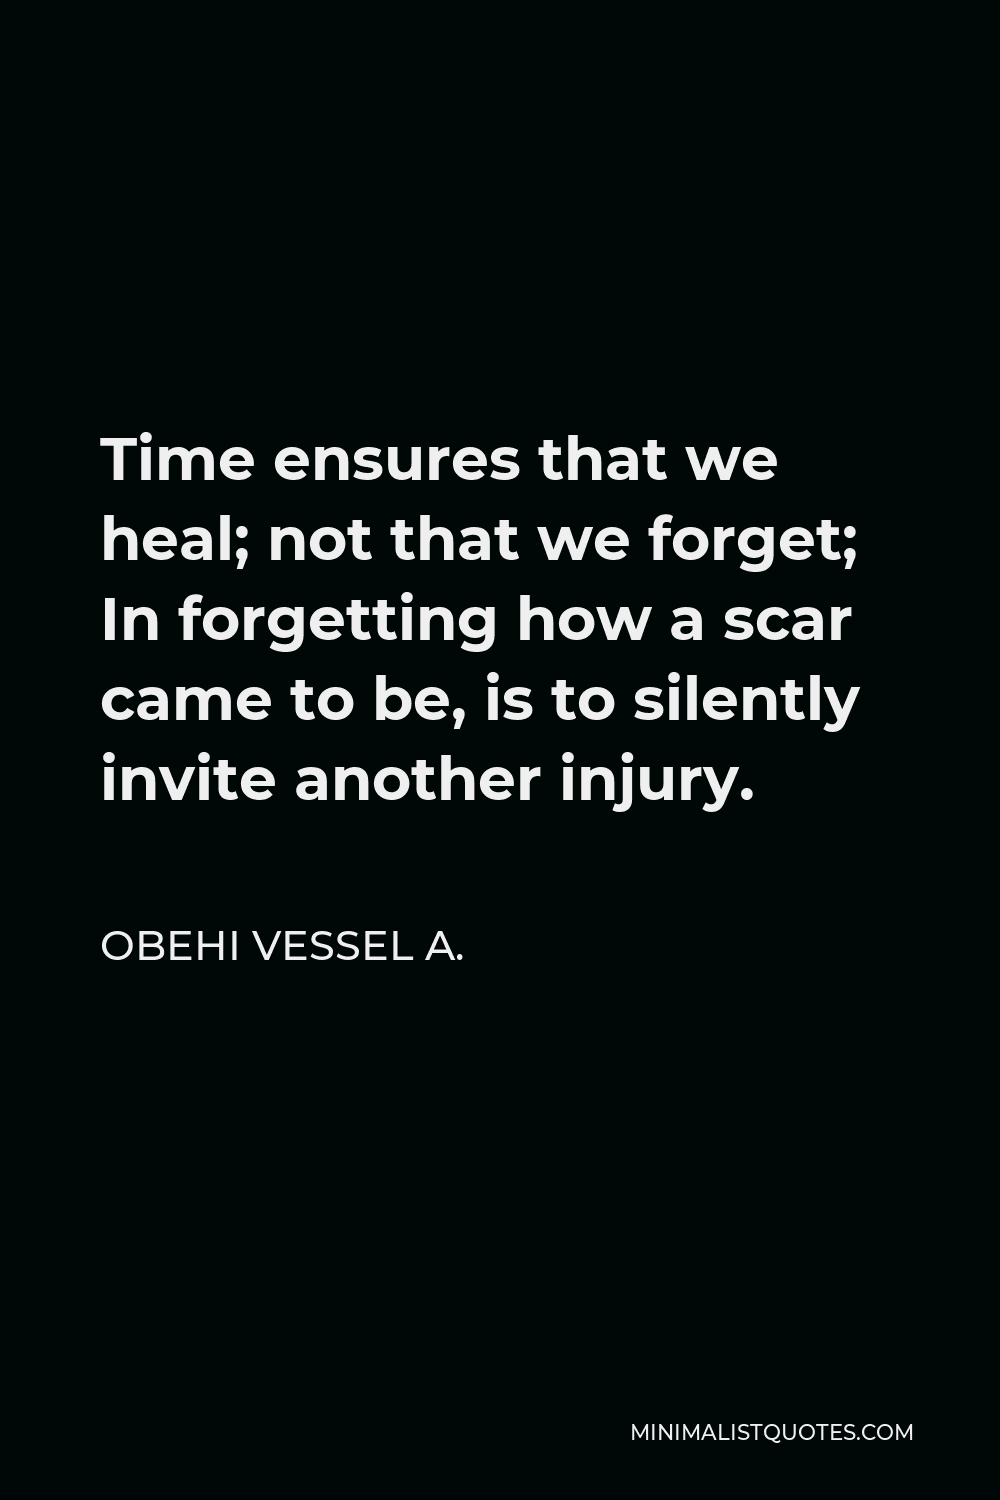 Obehi Vessel A. Quote - Time ensures that we heal; not that we forget; In forgetting how a scar came to be, is to silently invite another injury.